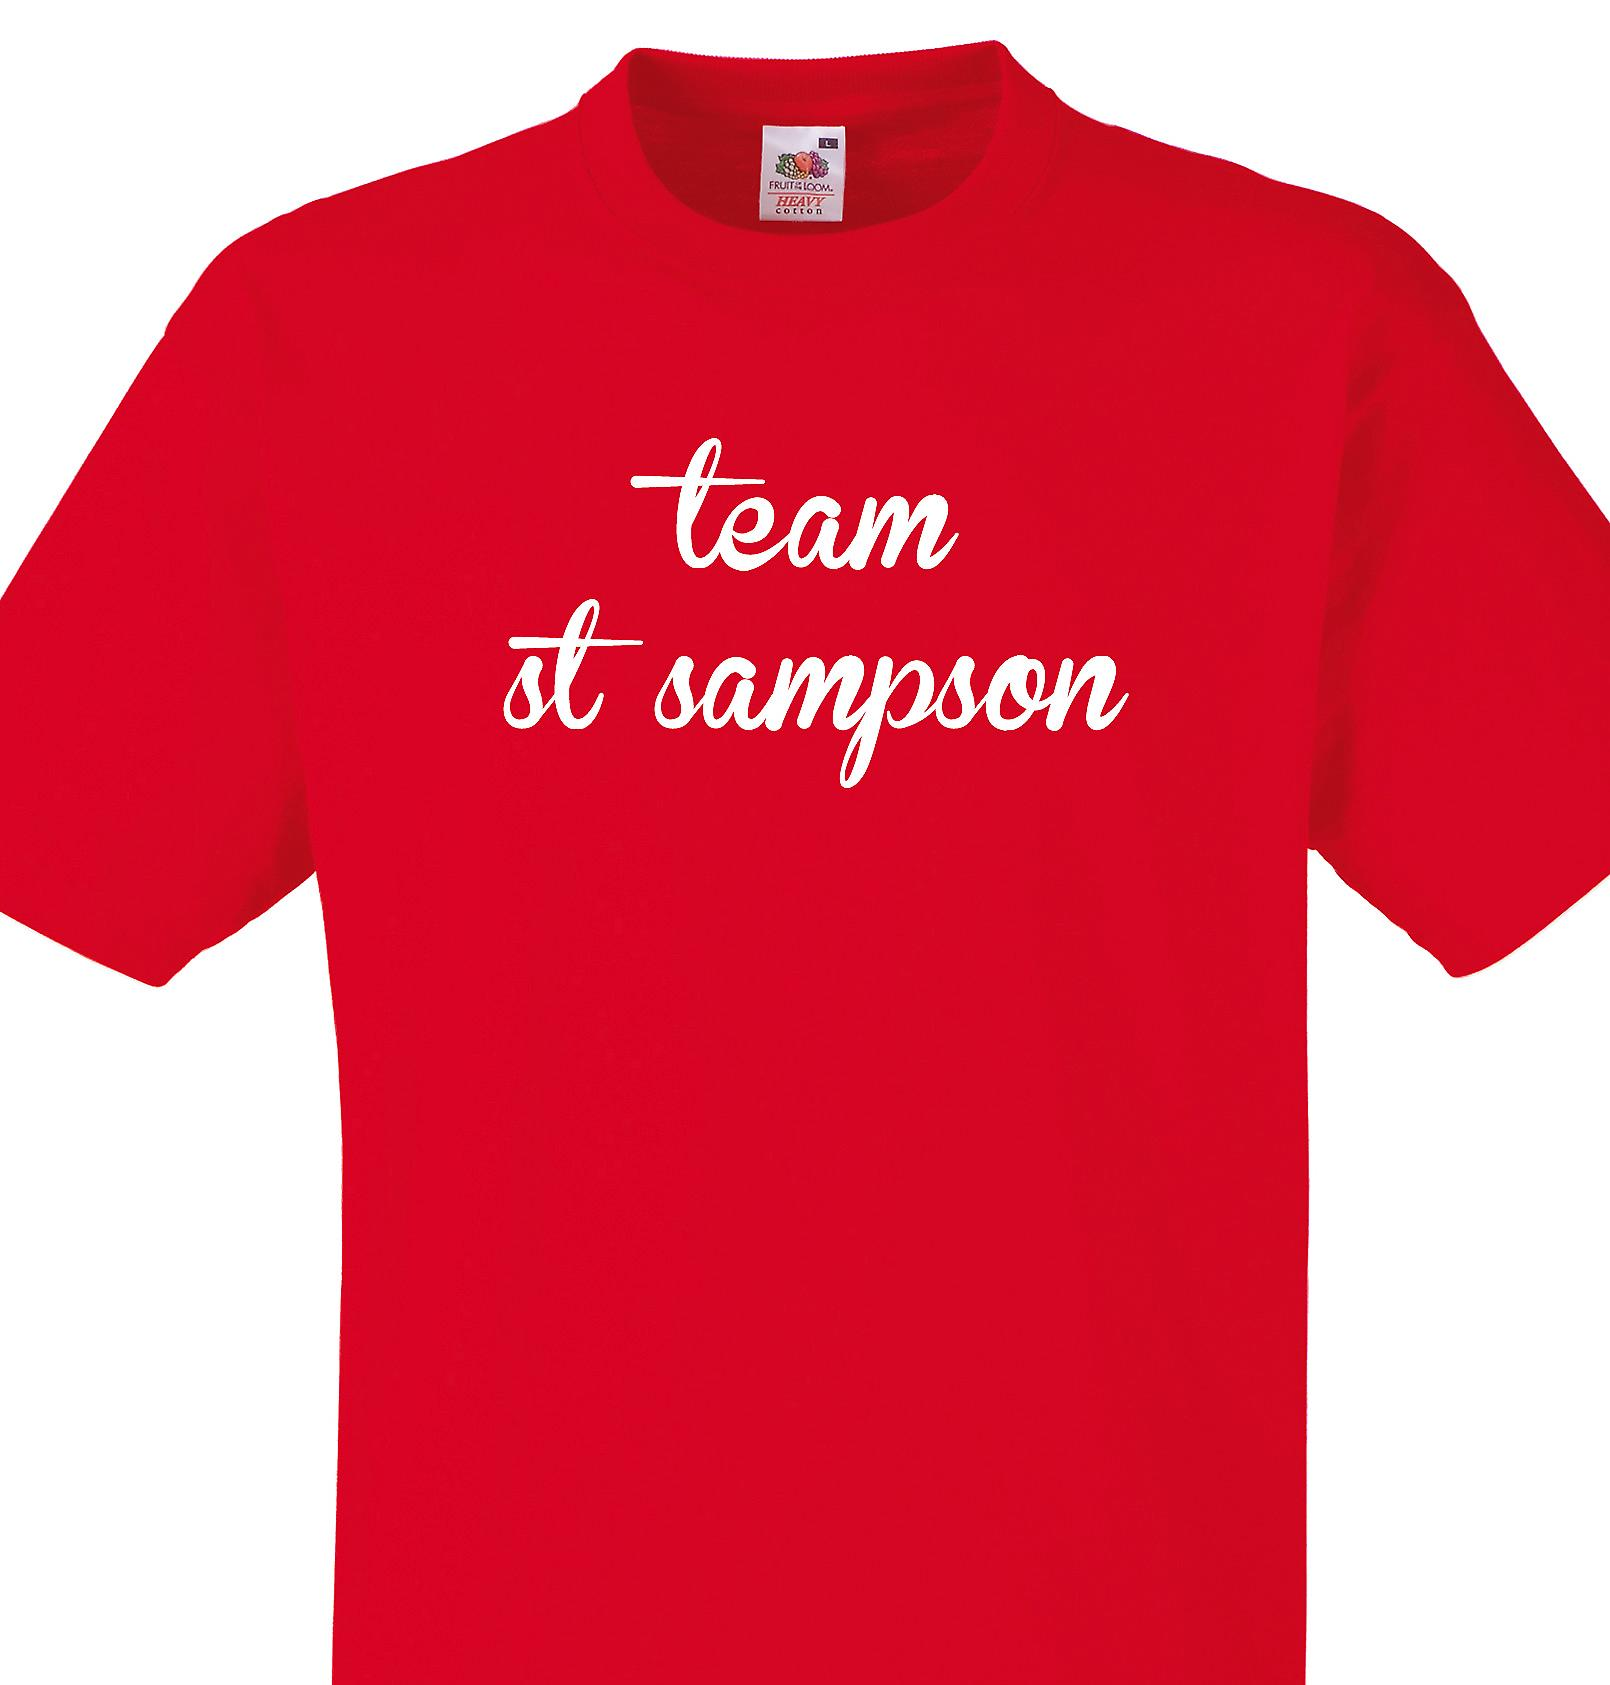 Team St sampson Red T shirt